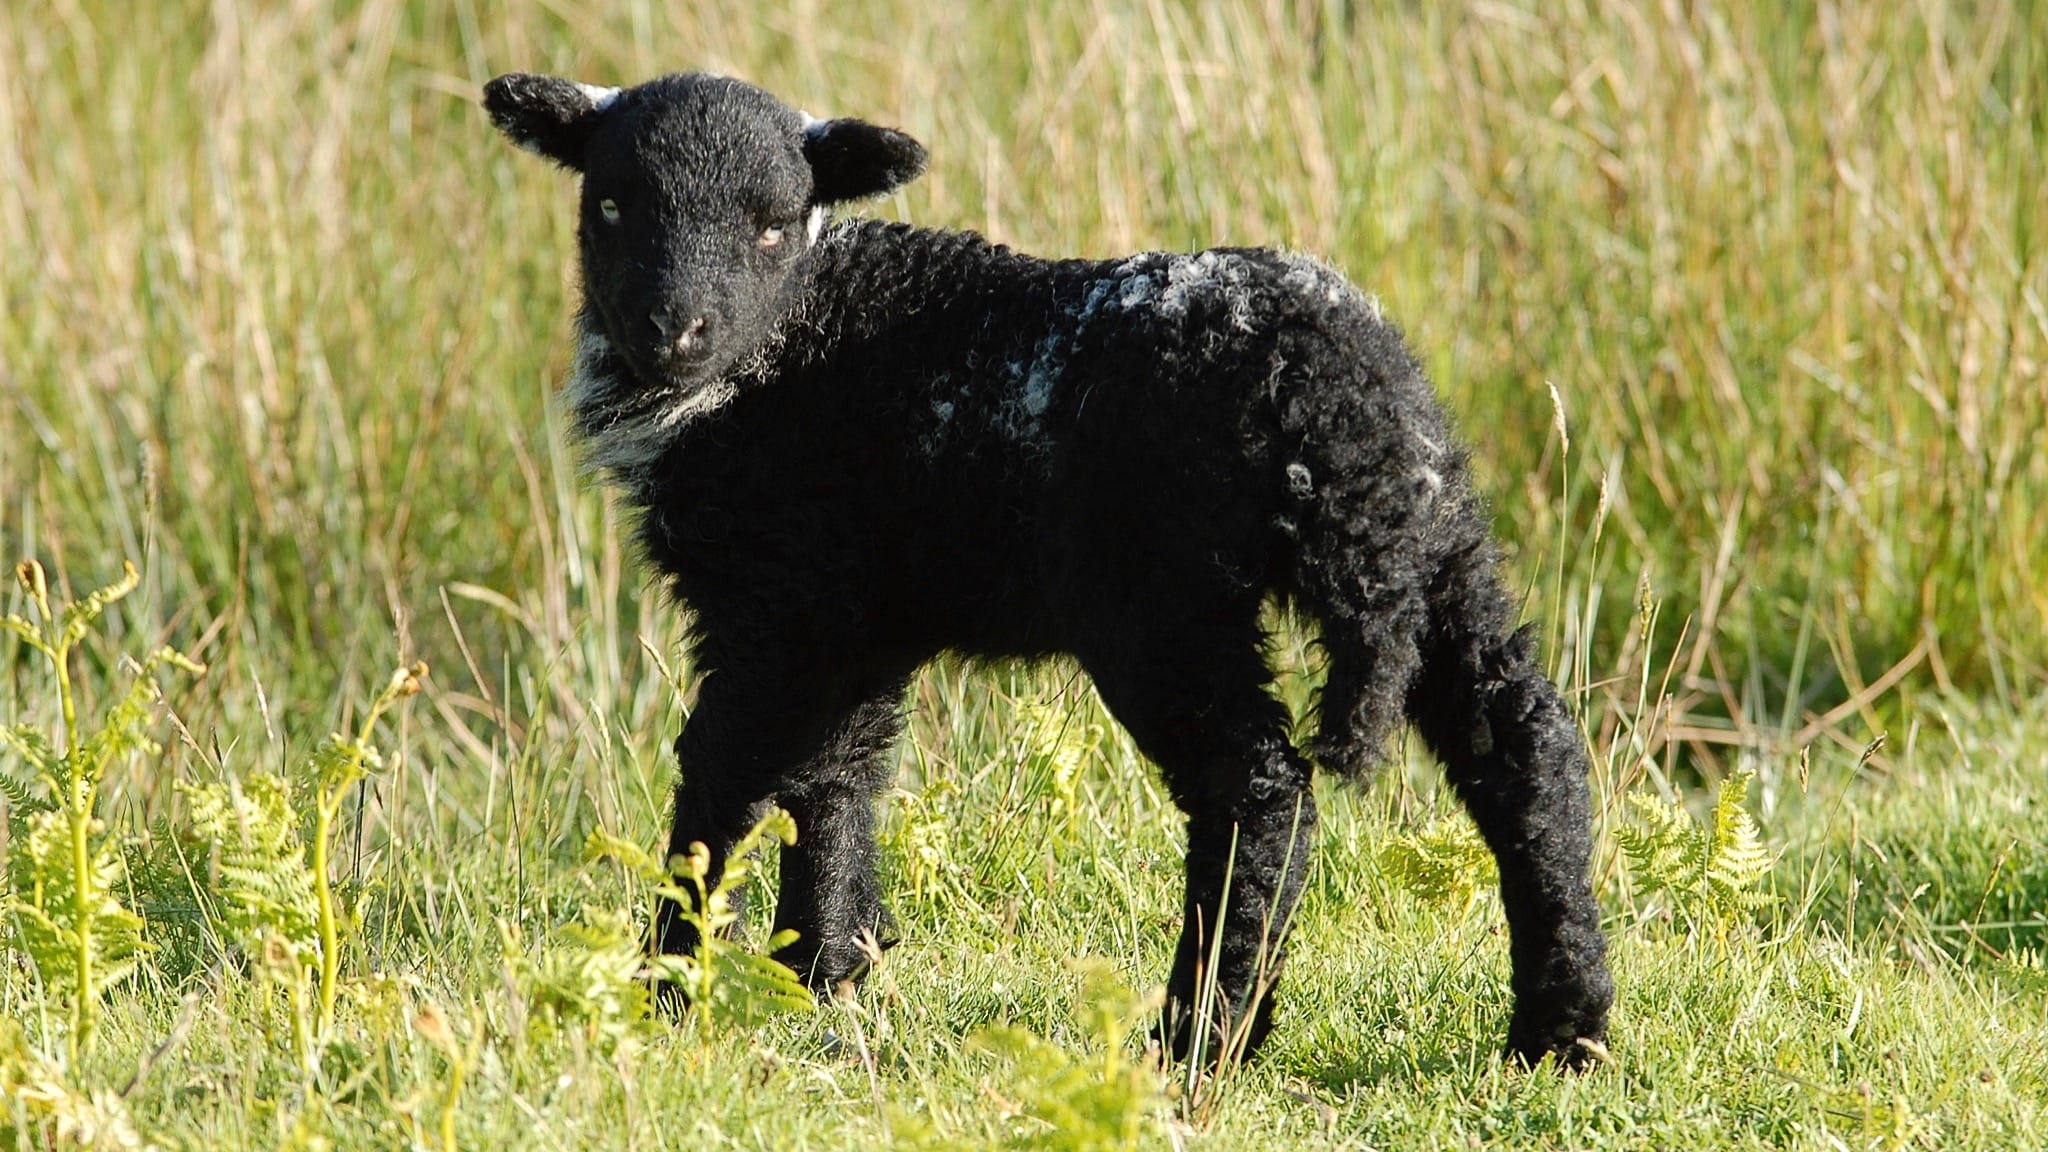 A real Herdwick lamb, with jet black fleece and tufts of white